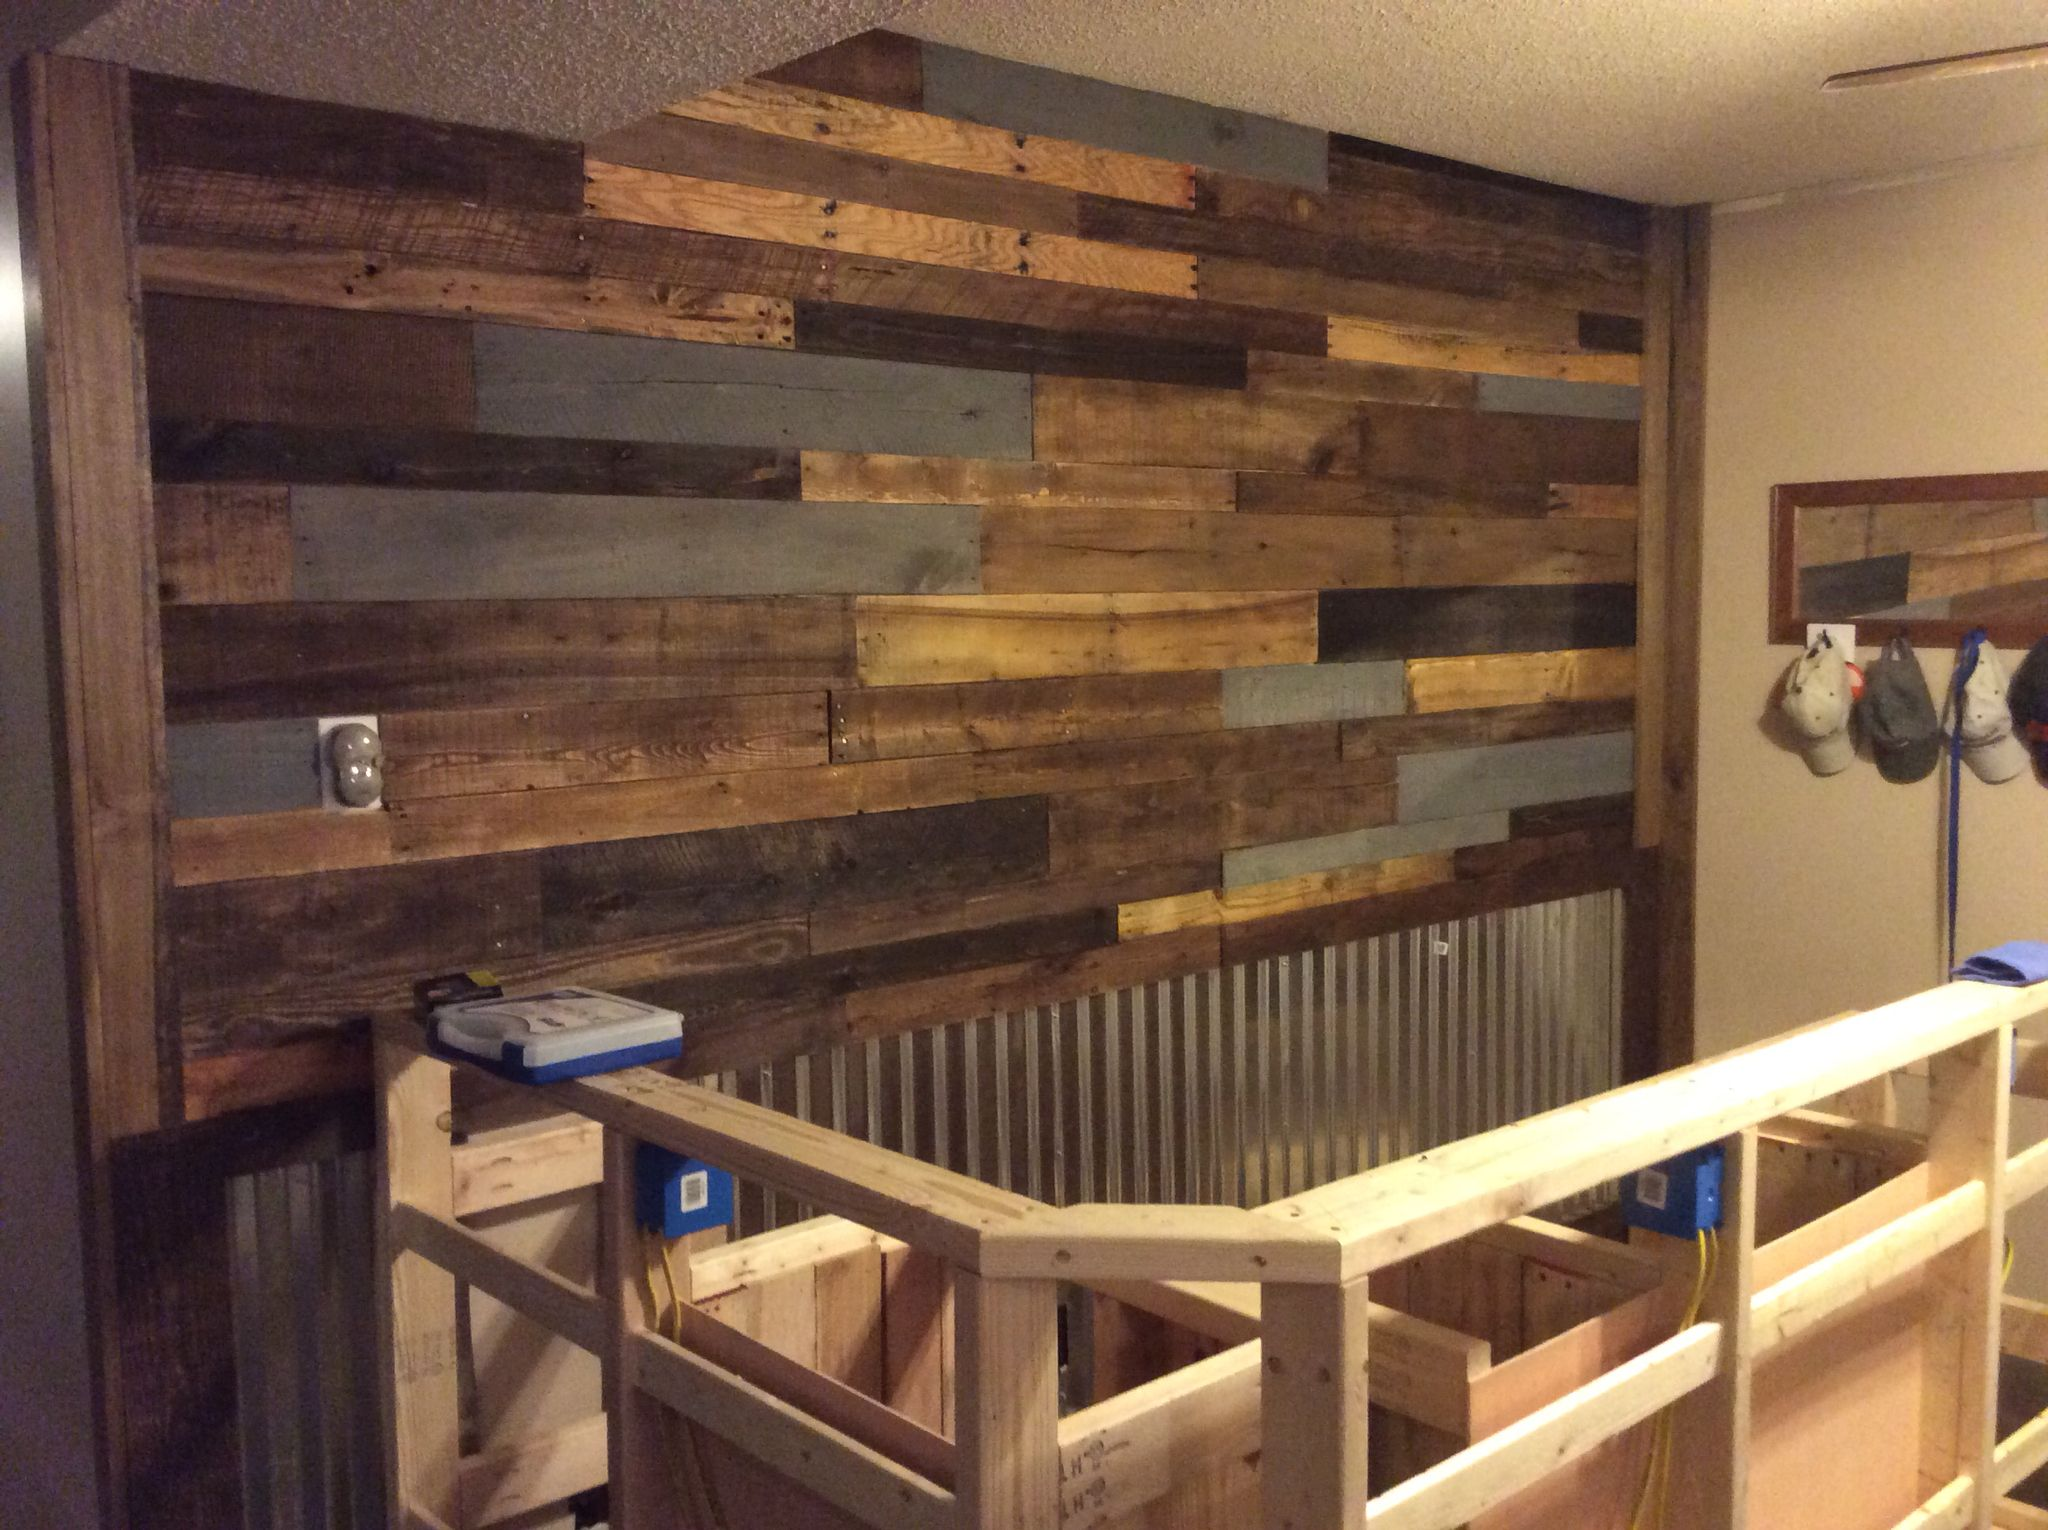 Ordinaire The Pallet Wall Behind The Bar Is Done. One Step Closer.